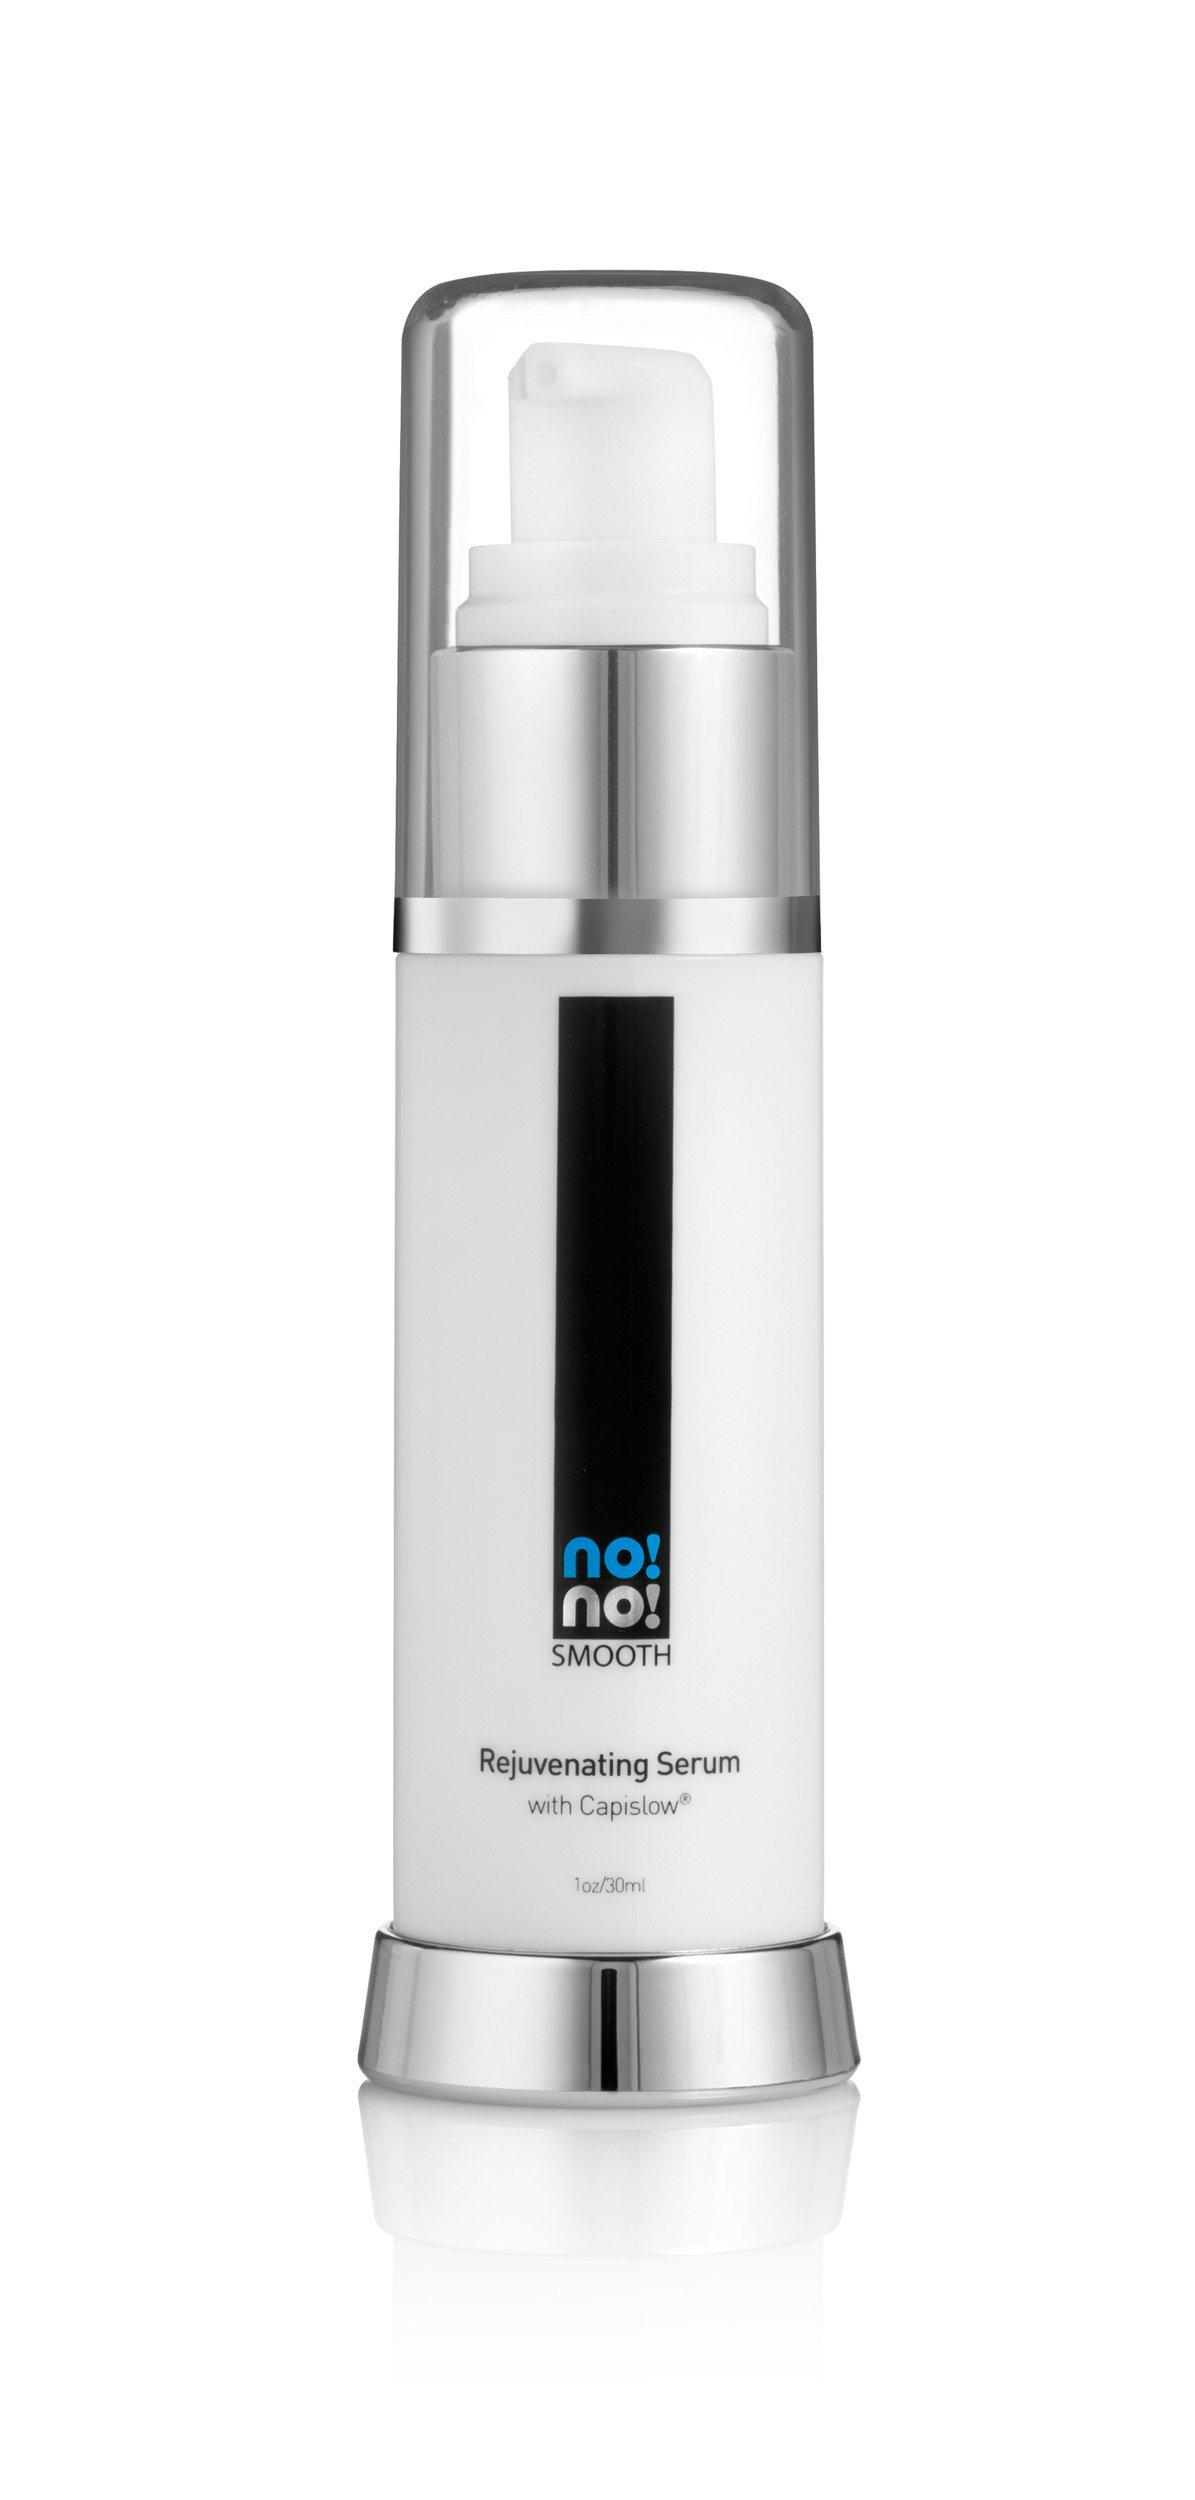 Amazon.com: Radiancy no!no! Smooth Rejuvenating Serum, 1 Fluid Ounce: Beauty